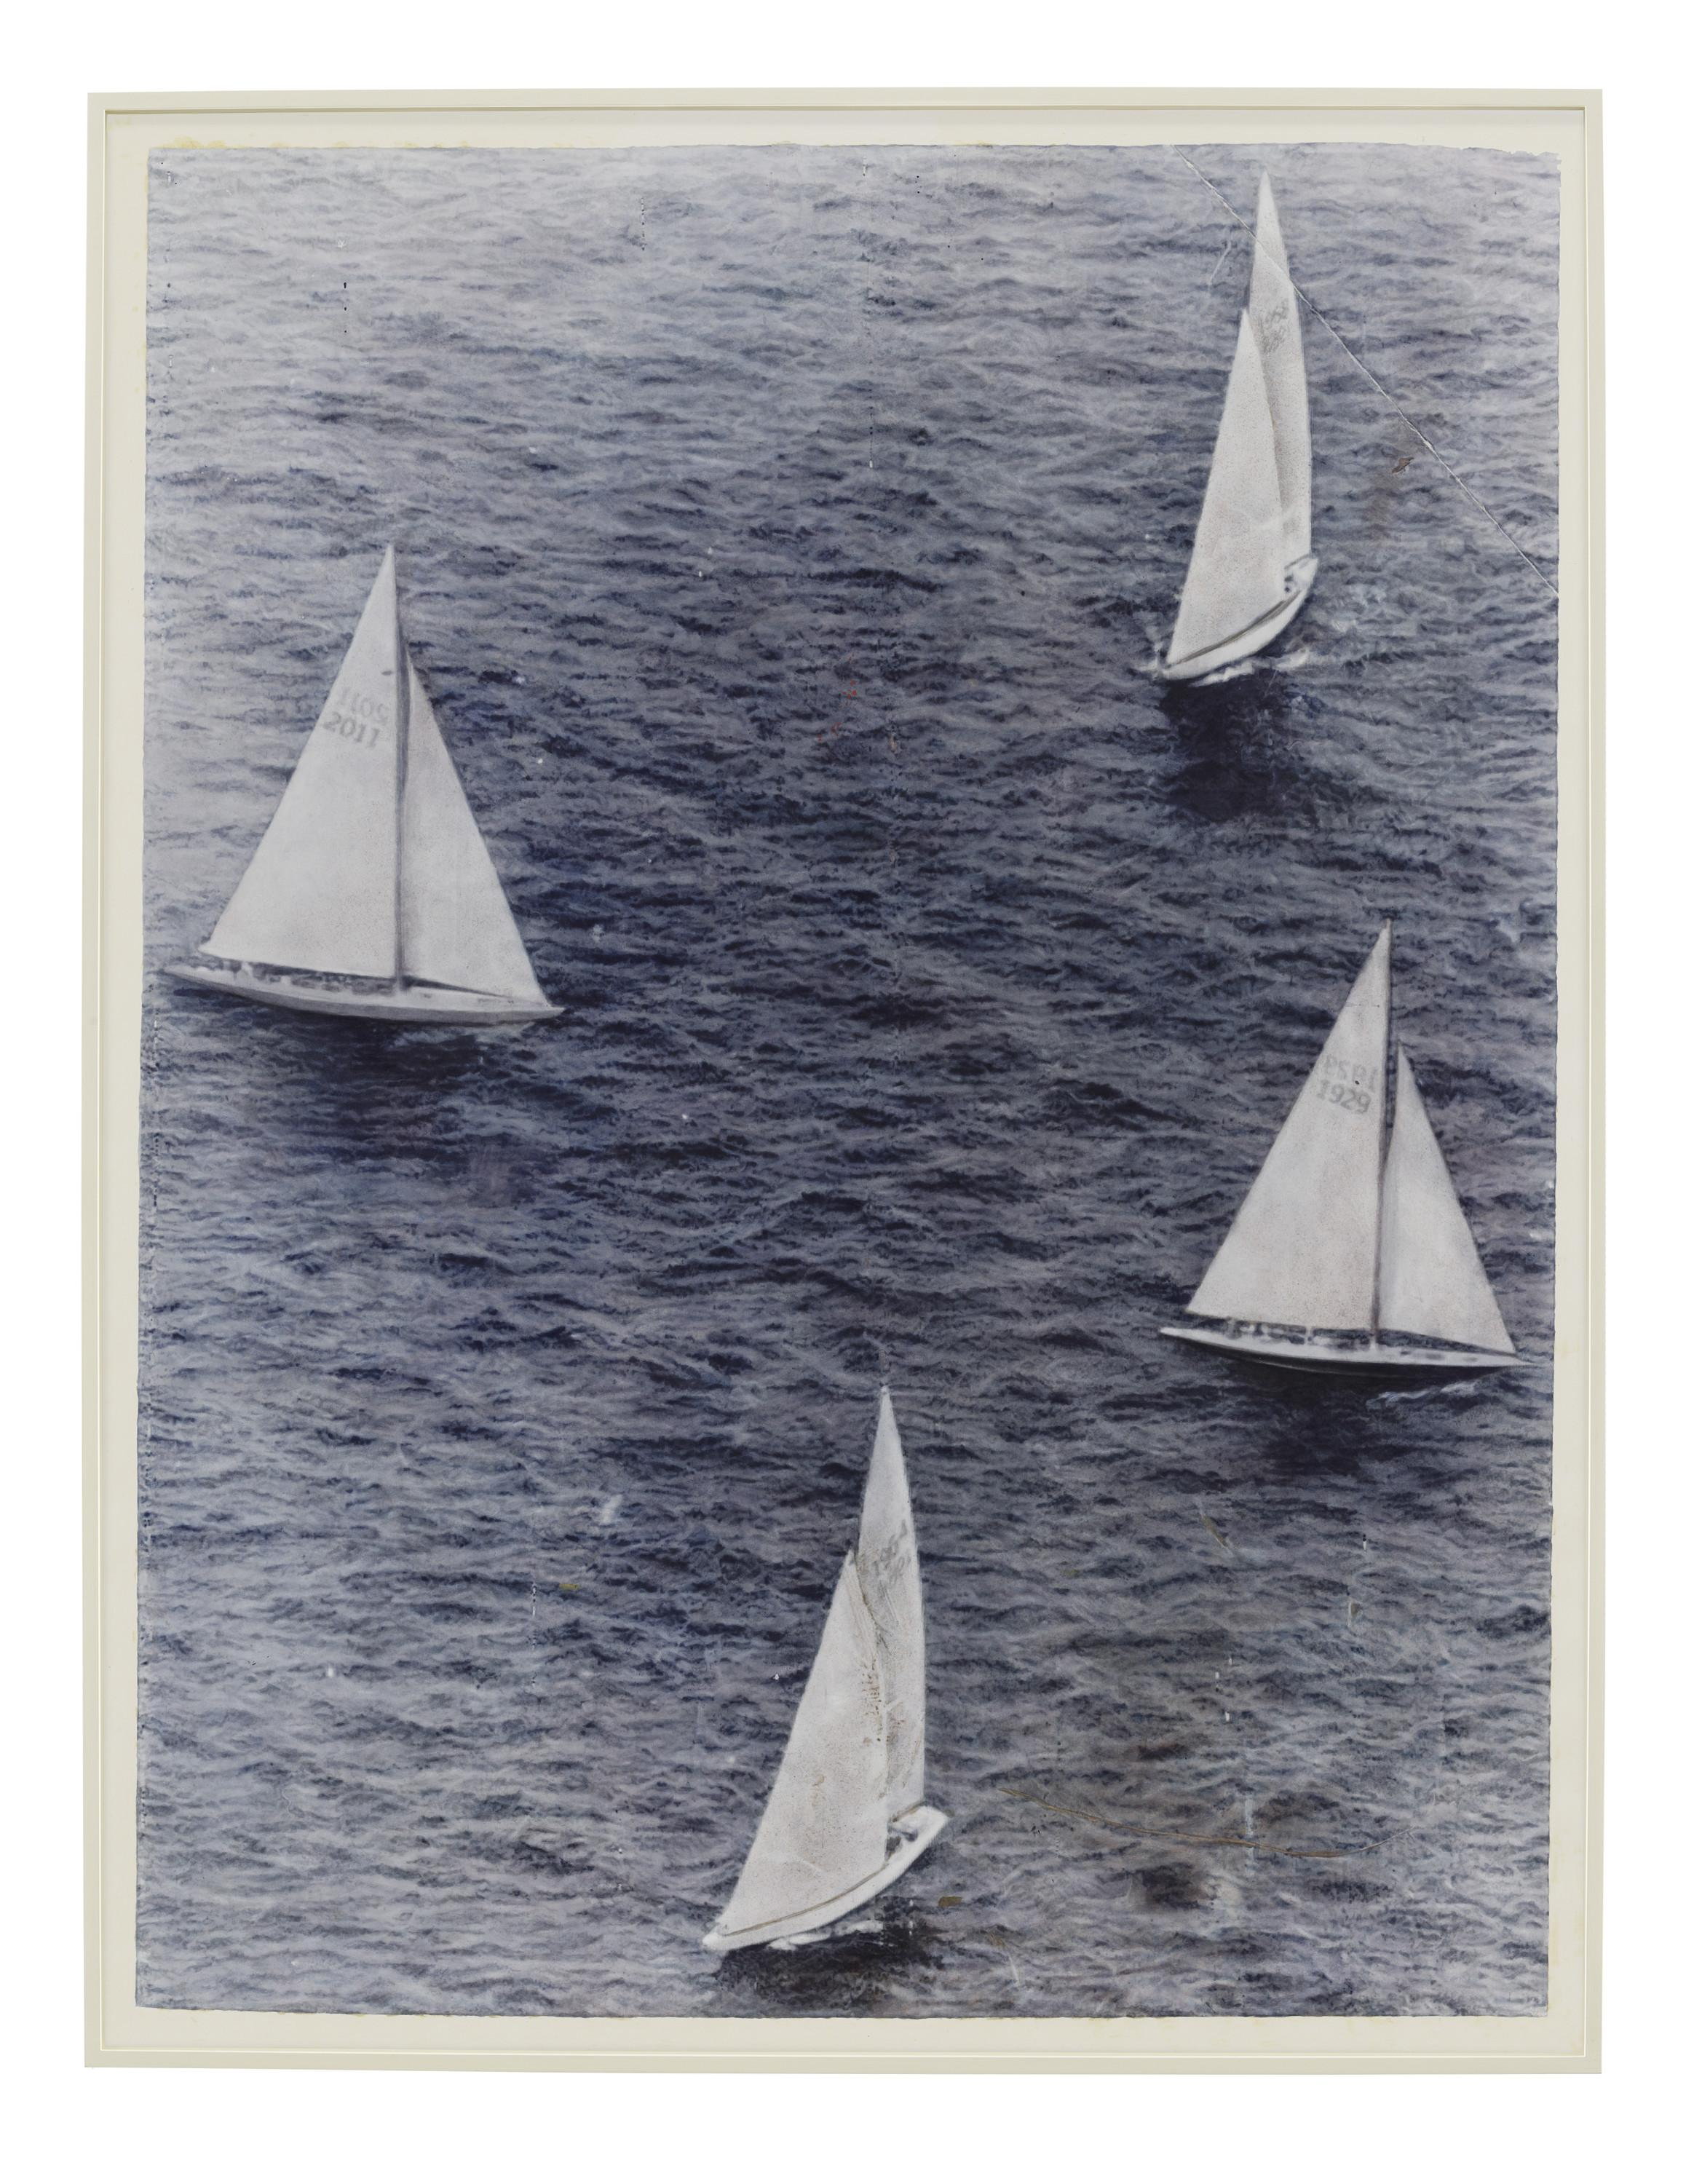 A faded black-and-white photograph shows four sailboats sailing in close proximity.